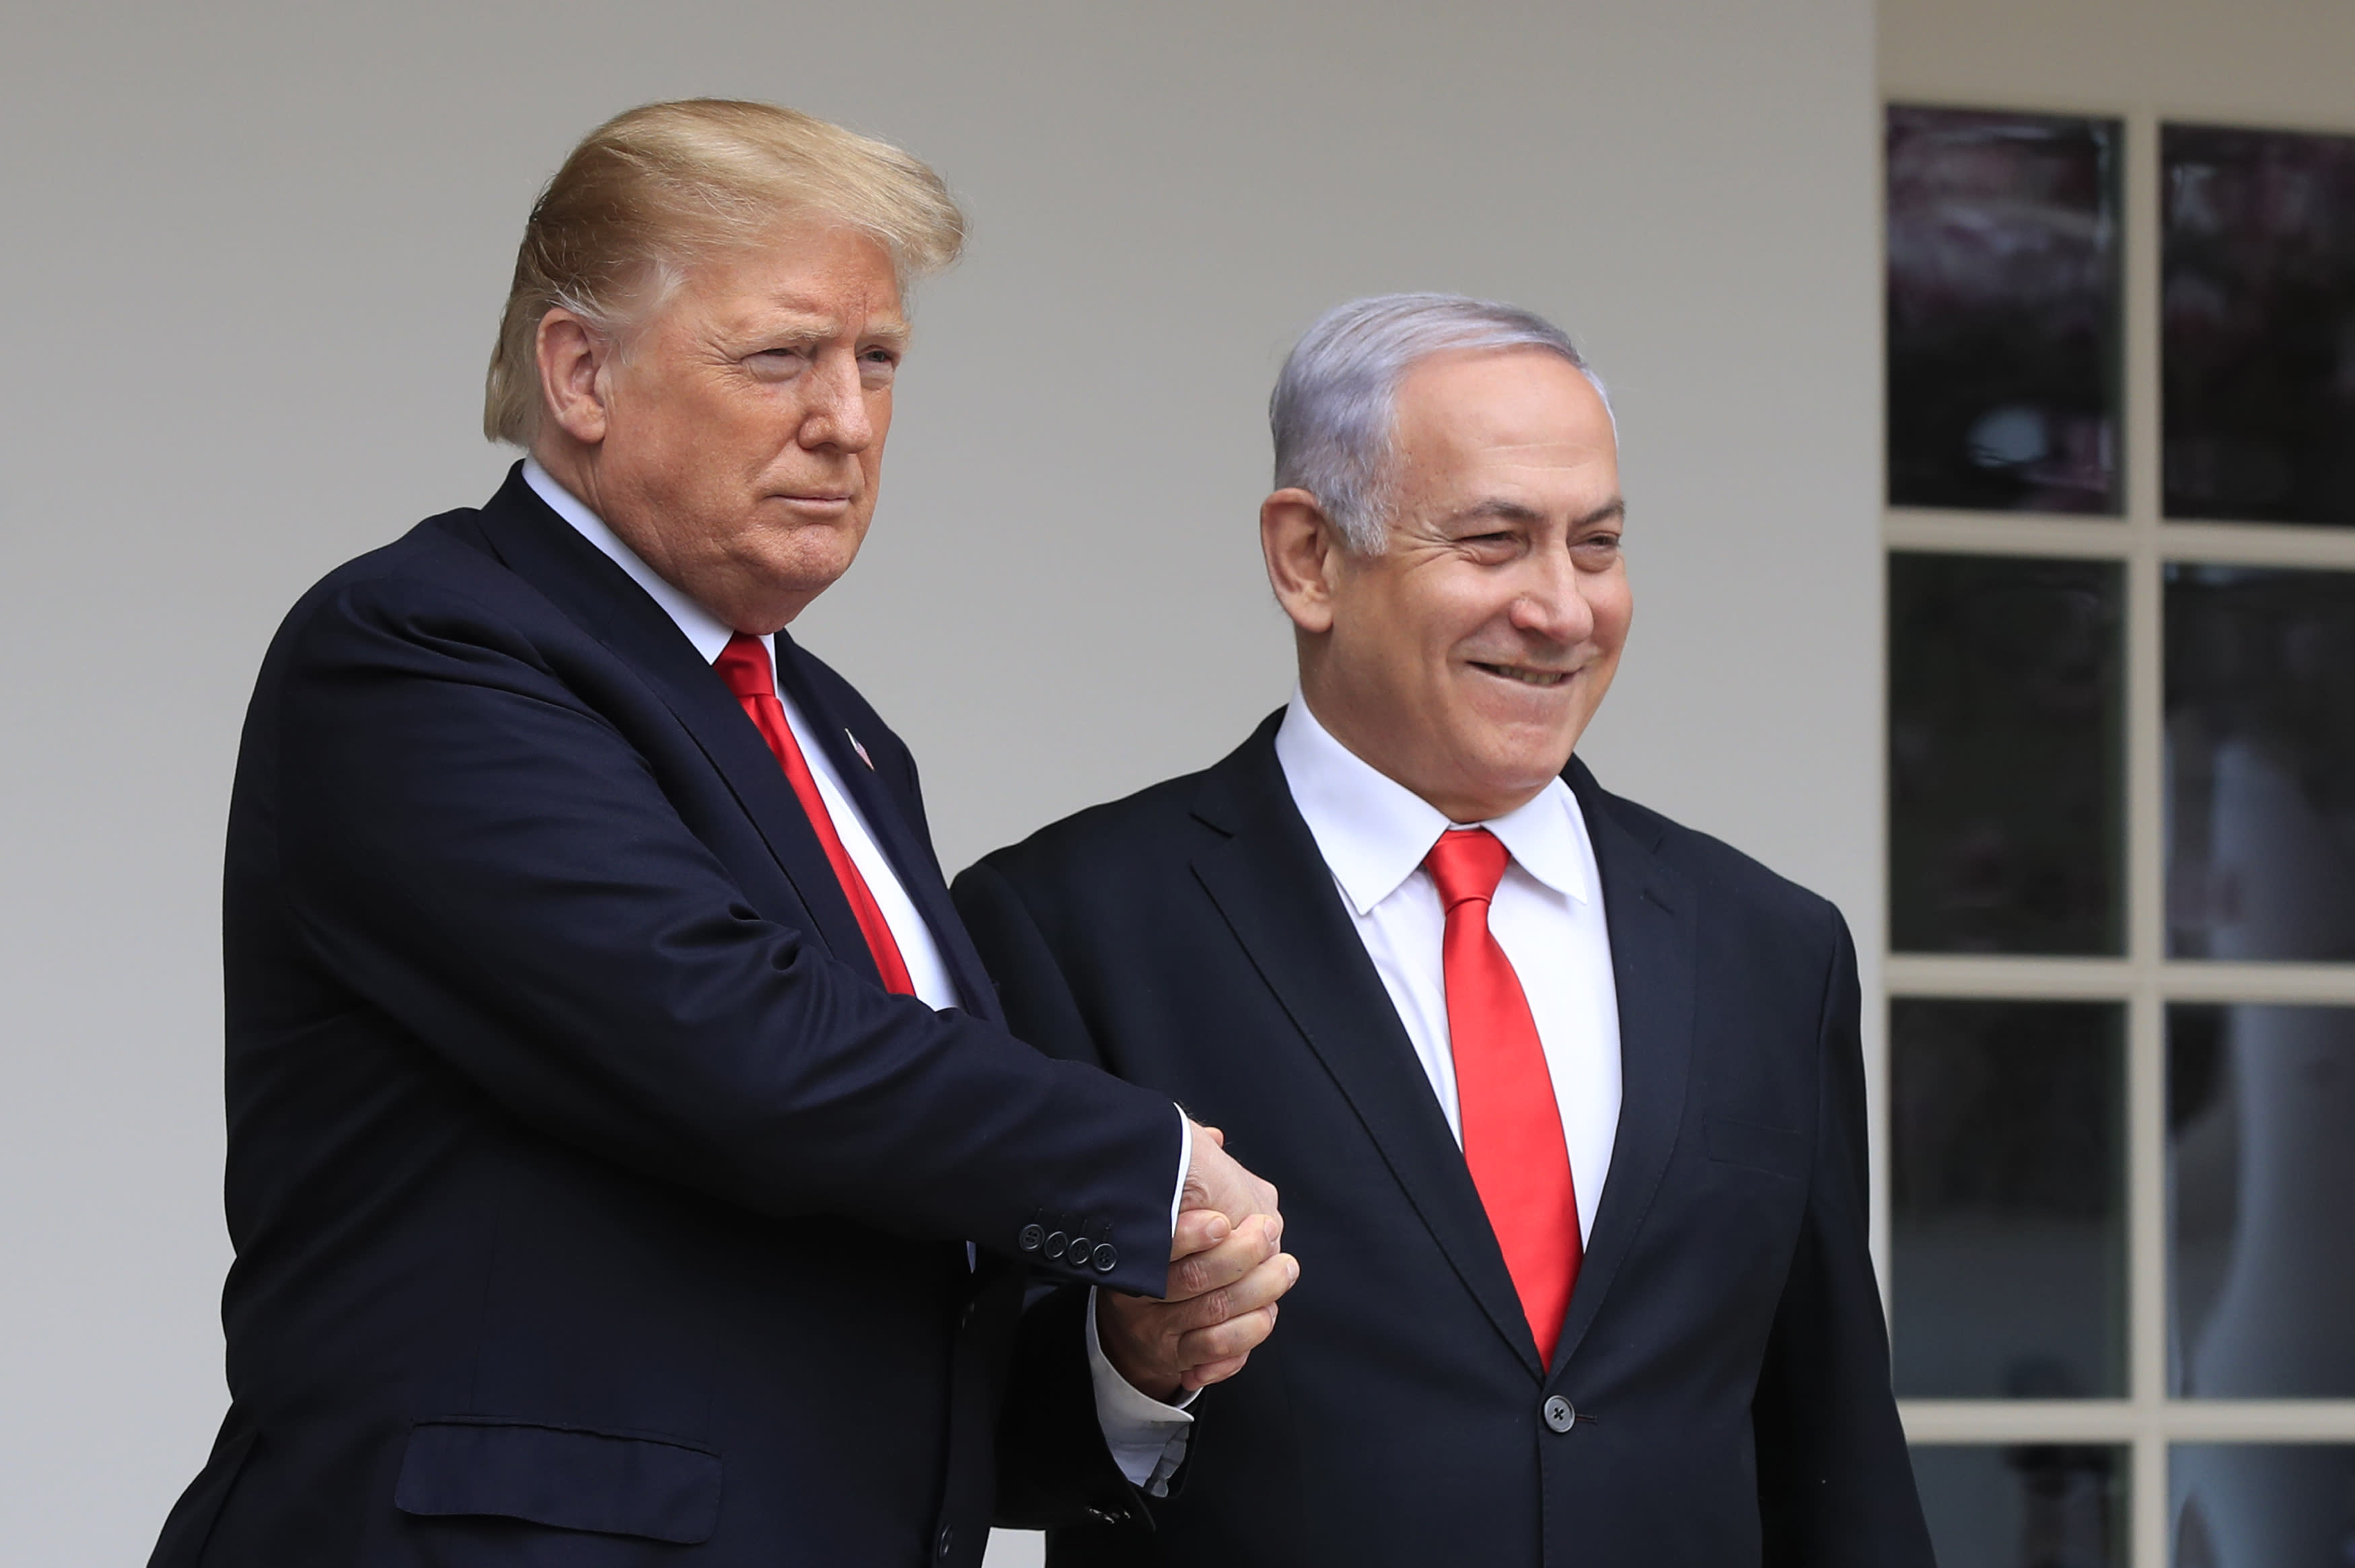 FILE - In this March 25, 2019 file photo, President Donald Trump welcomes visiting Israeli Prime Minister Benjamin Netanyahu to the White House in Washington. In the eyes of critics, Benjamin Netanyahu's decision to bar two Democratic congresswomen at the request of President Donald Trump is the latest reckless gamble by a prime minister willing to sacrifice Israel's national interests for short-term gain. And yet the pursuit of such allegedly short-term gains has kept Netanyahu in power for more than a decade. (AP Photo/Manuel Balce Ceneta, File)